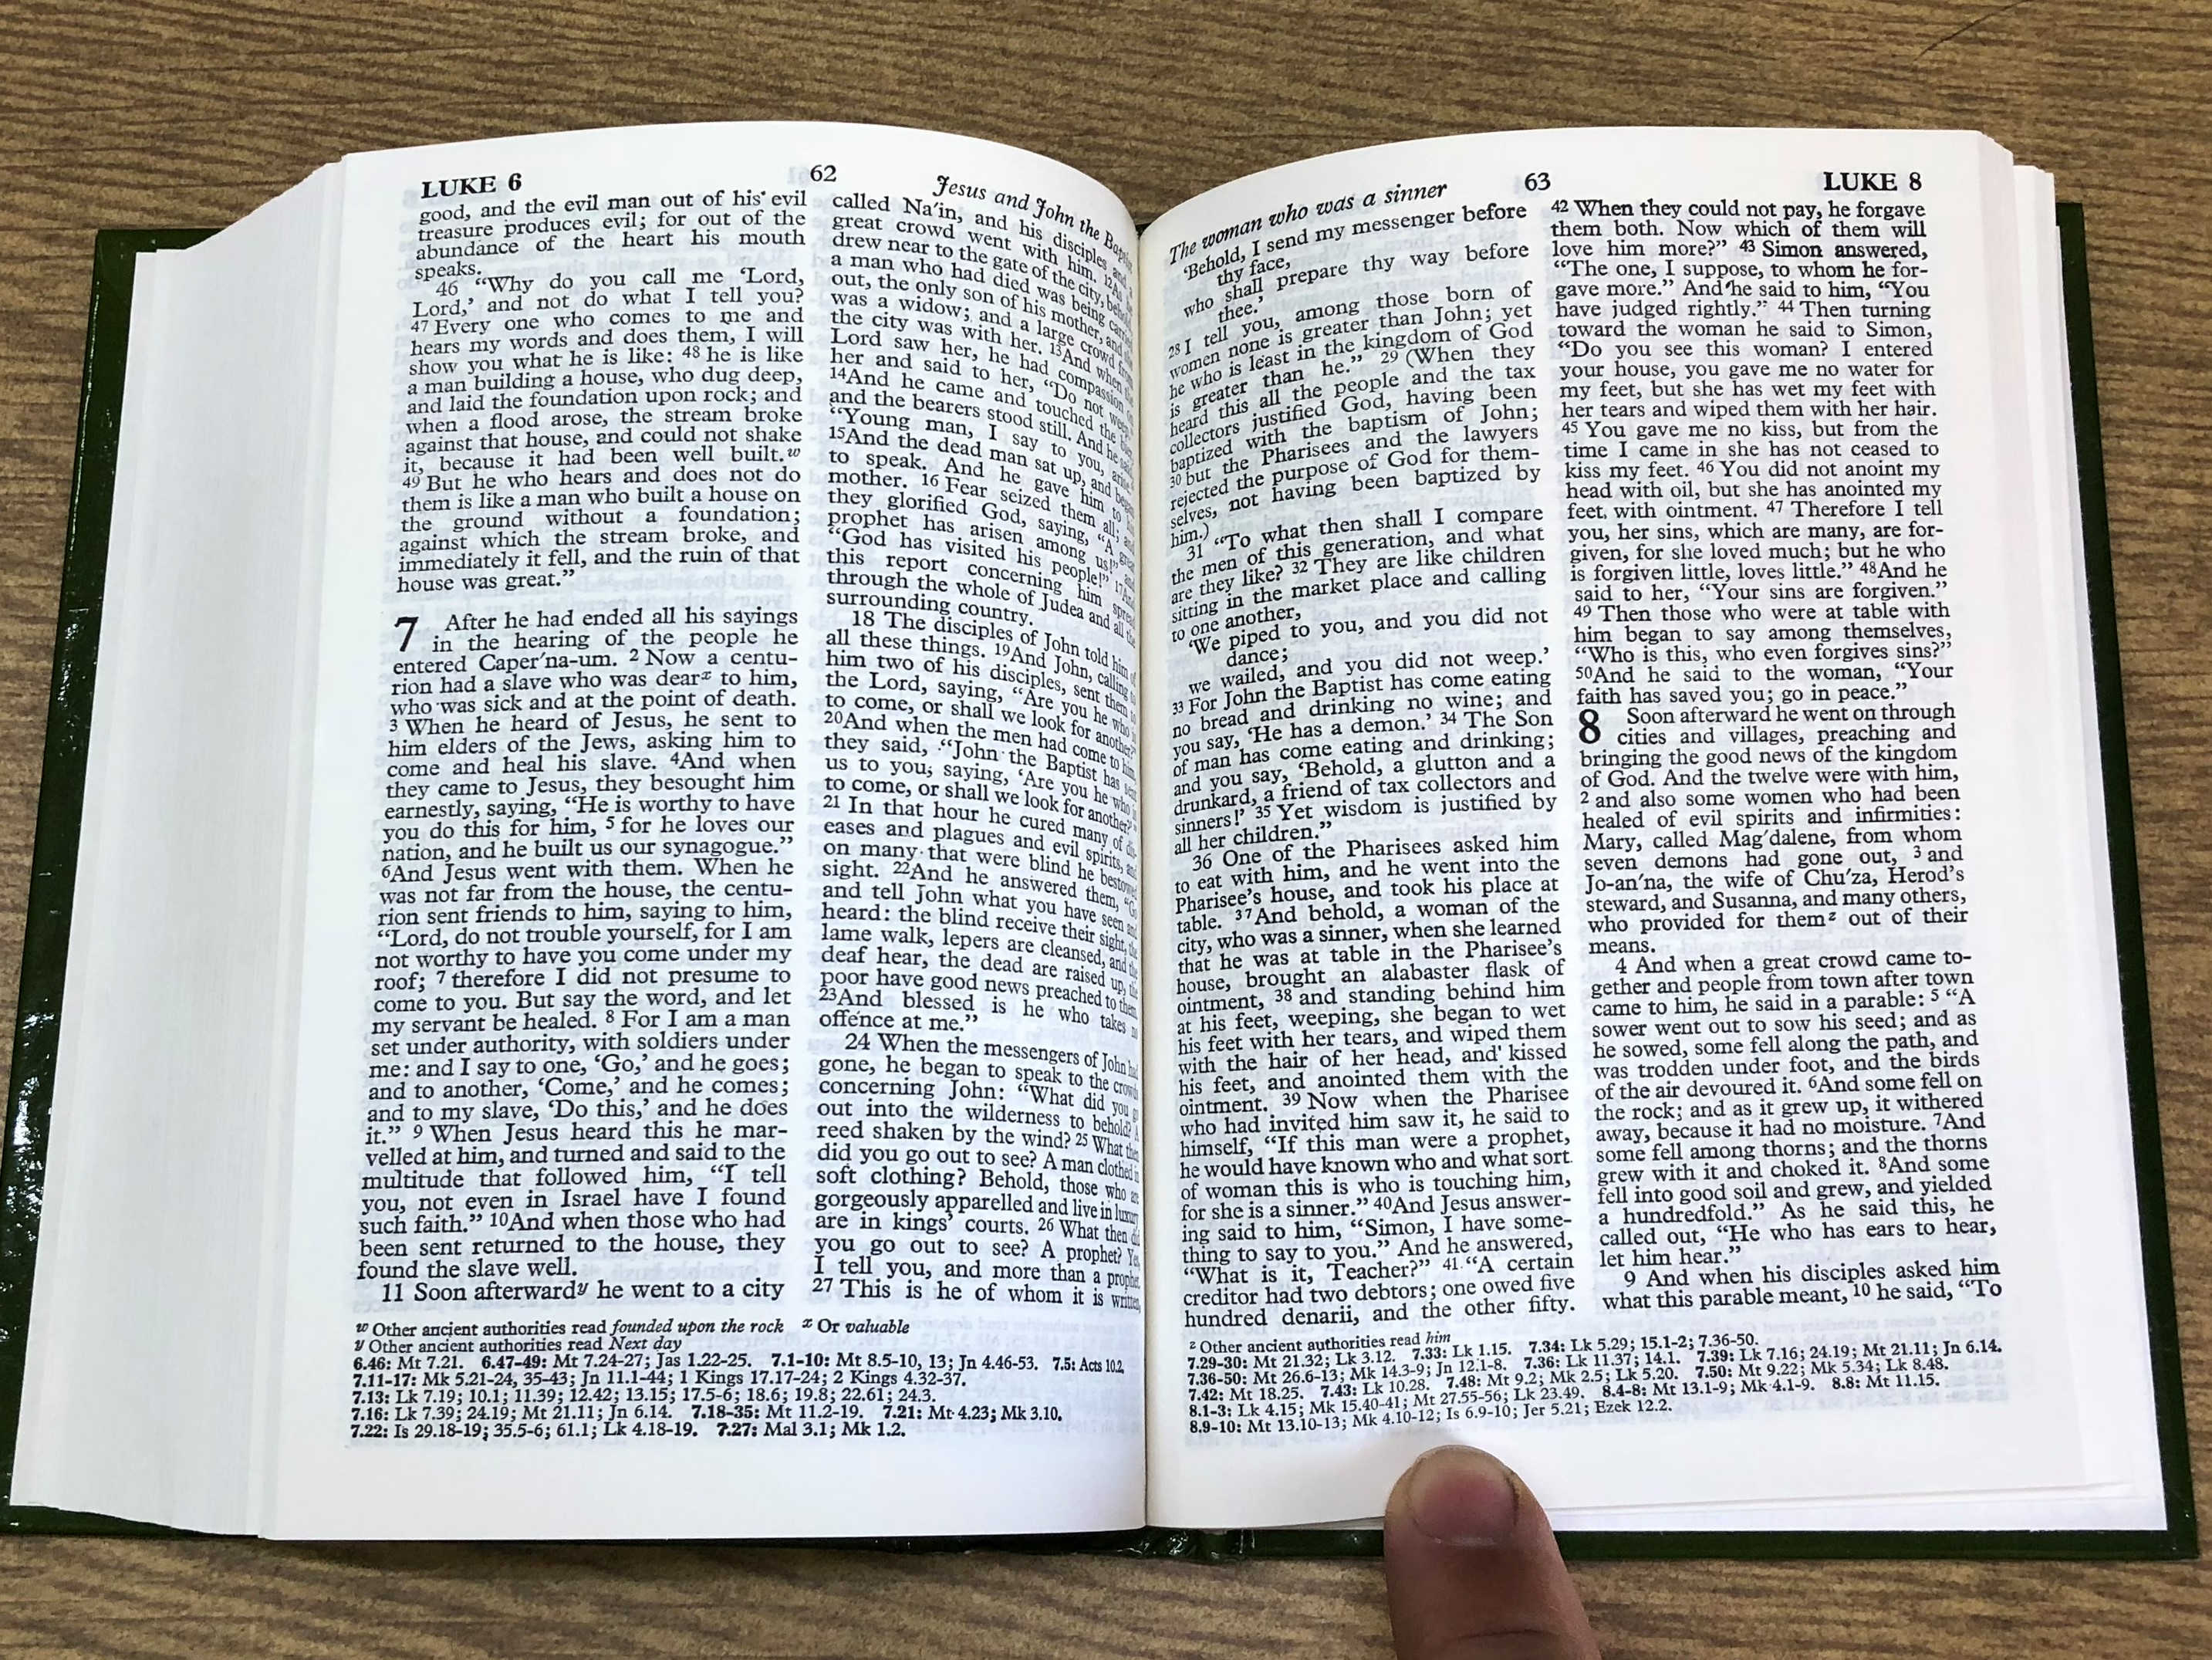 english-bible-revised-standard-version-rsv-rs43-16-.jpg